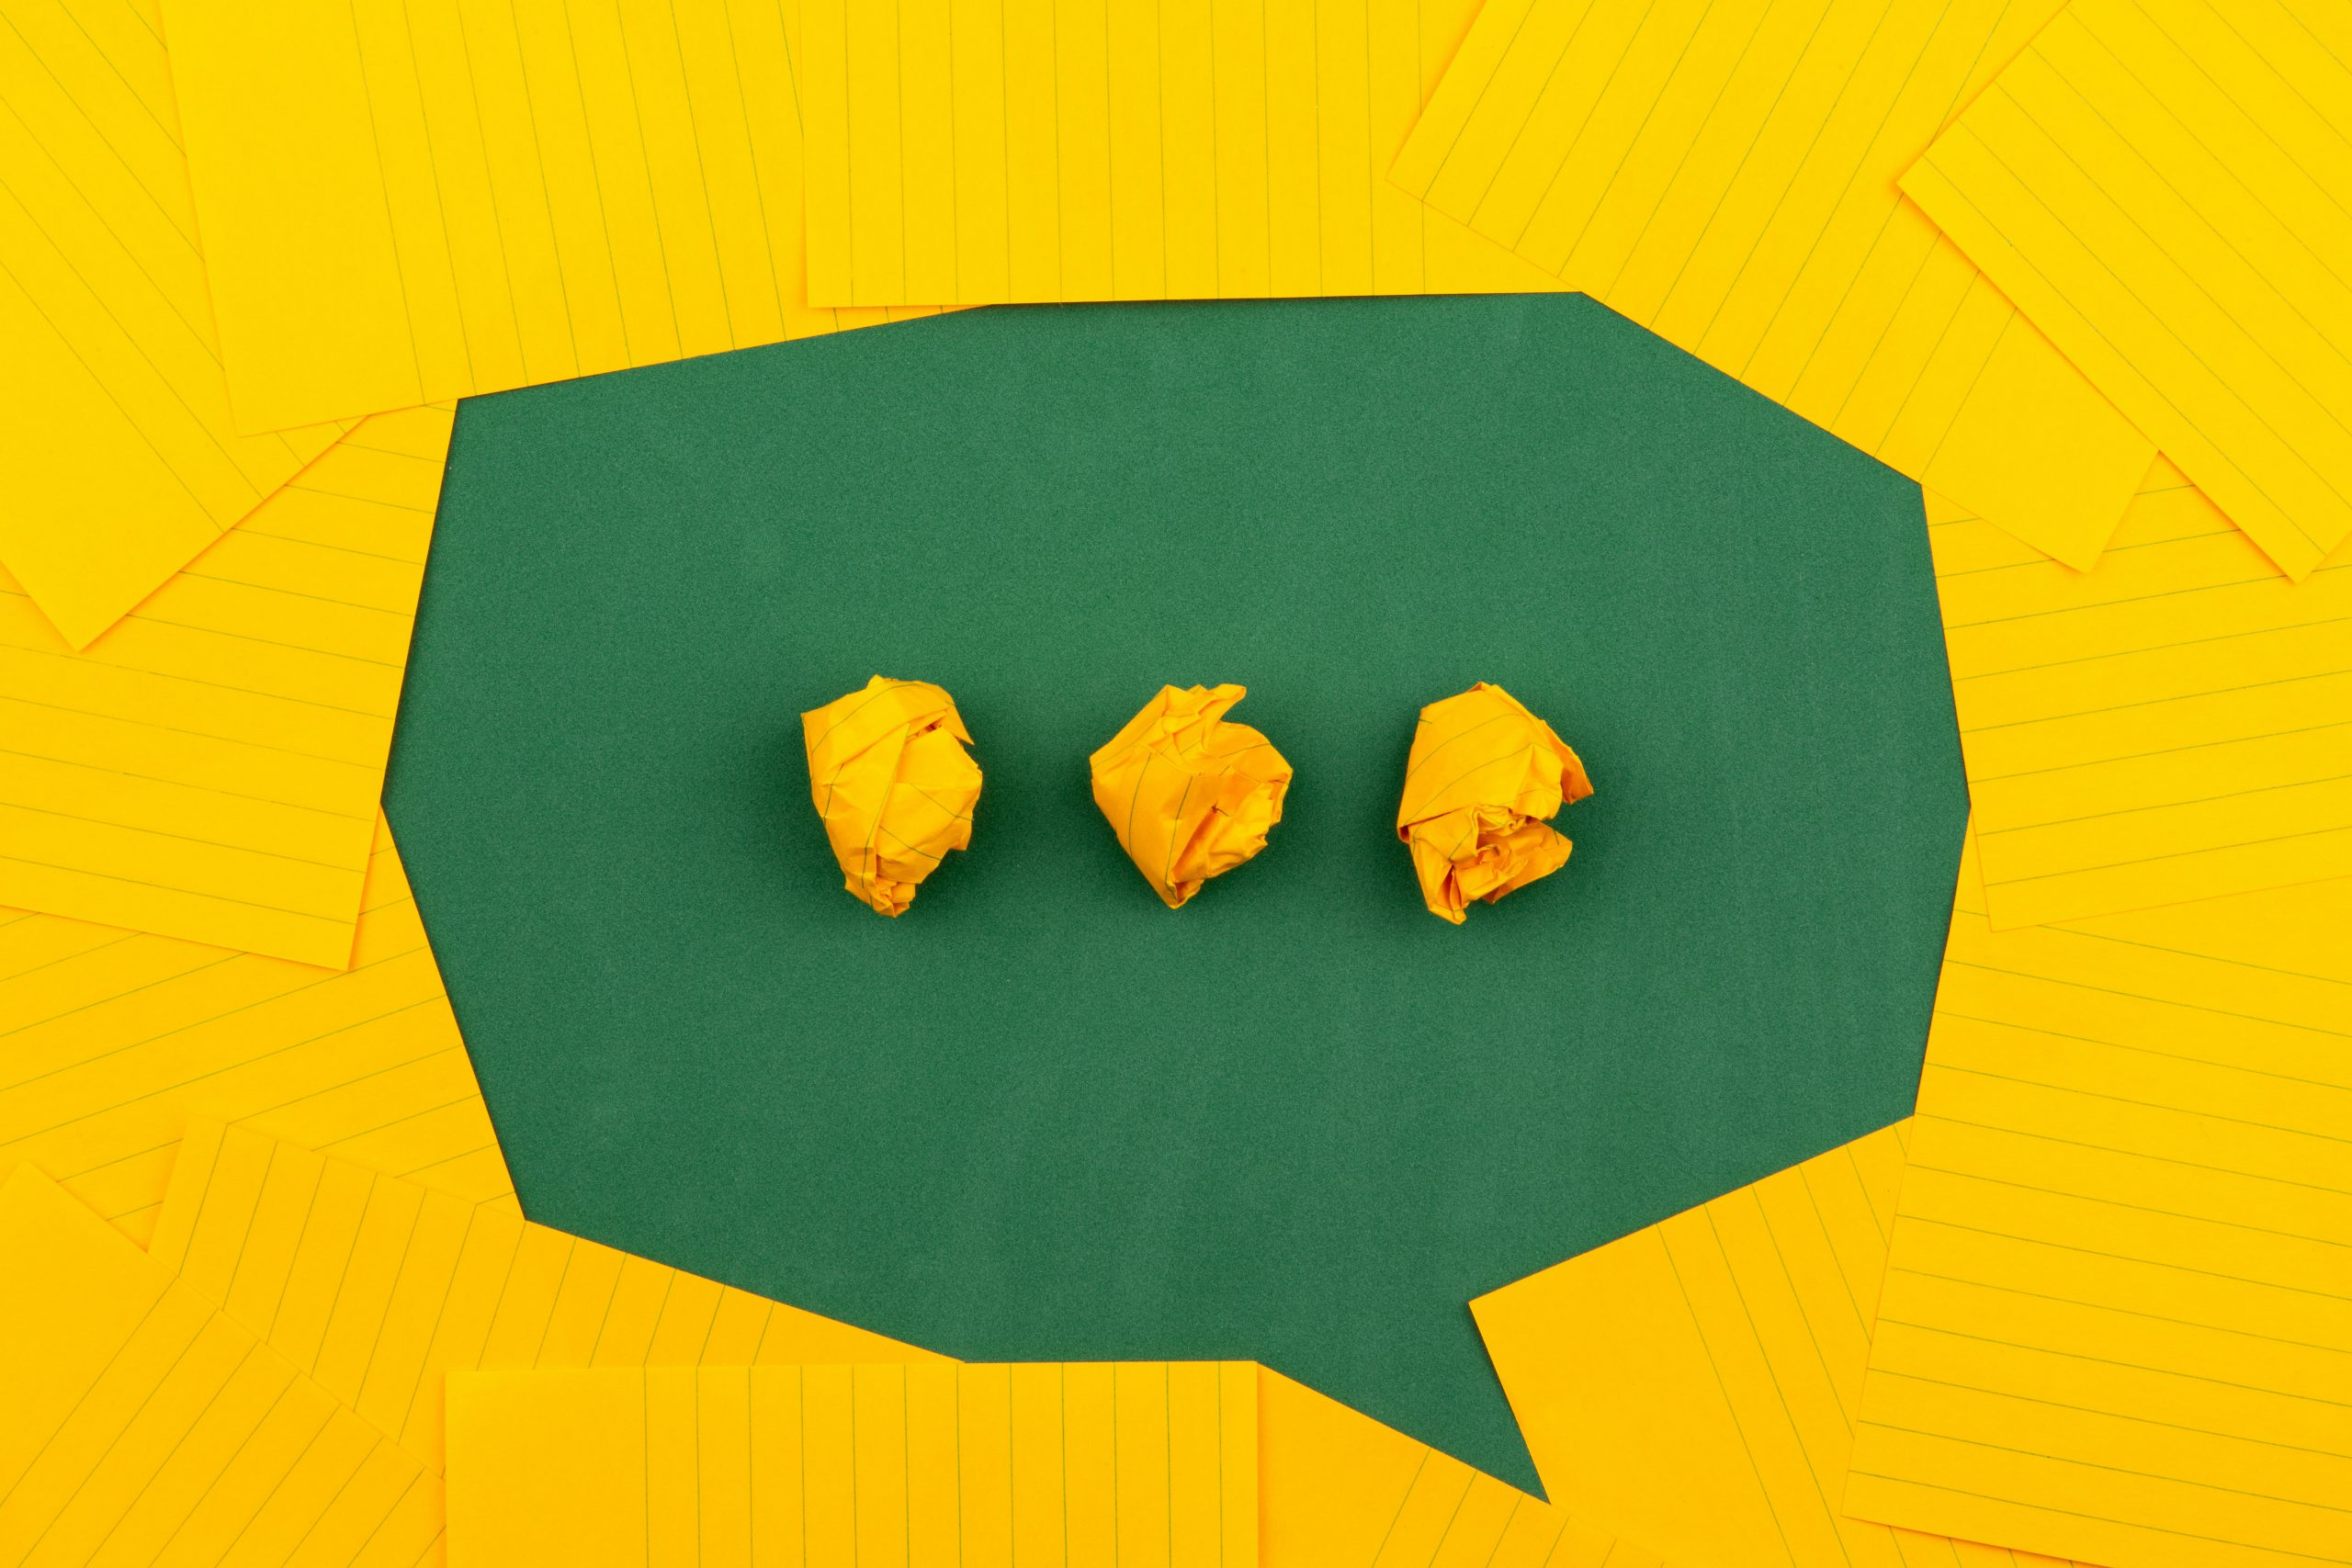 orange sheets of paper lie on a green school board and form a chat bubble with three crumpled papers